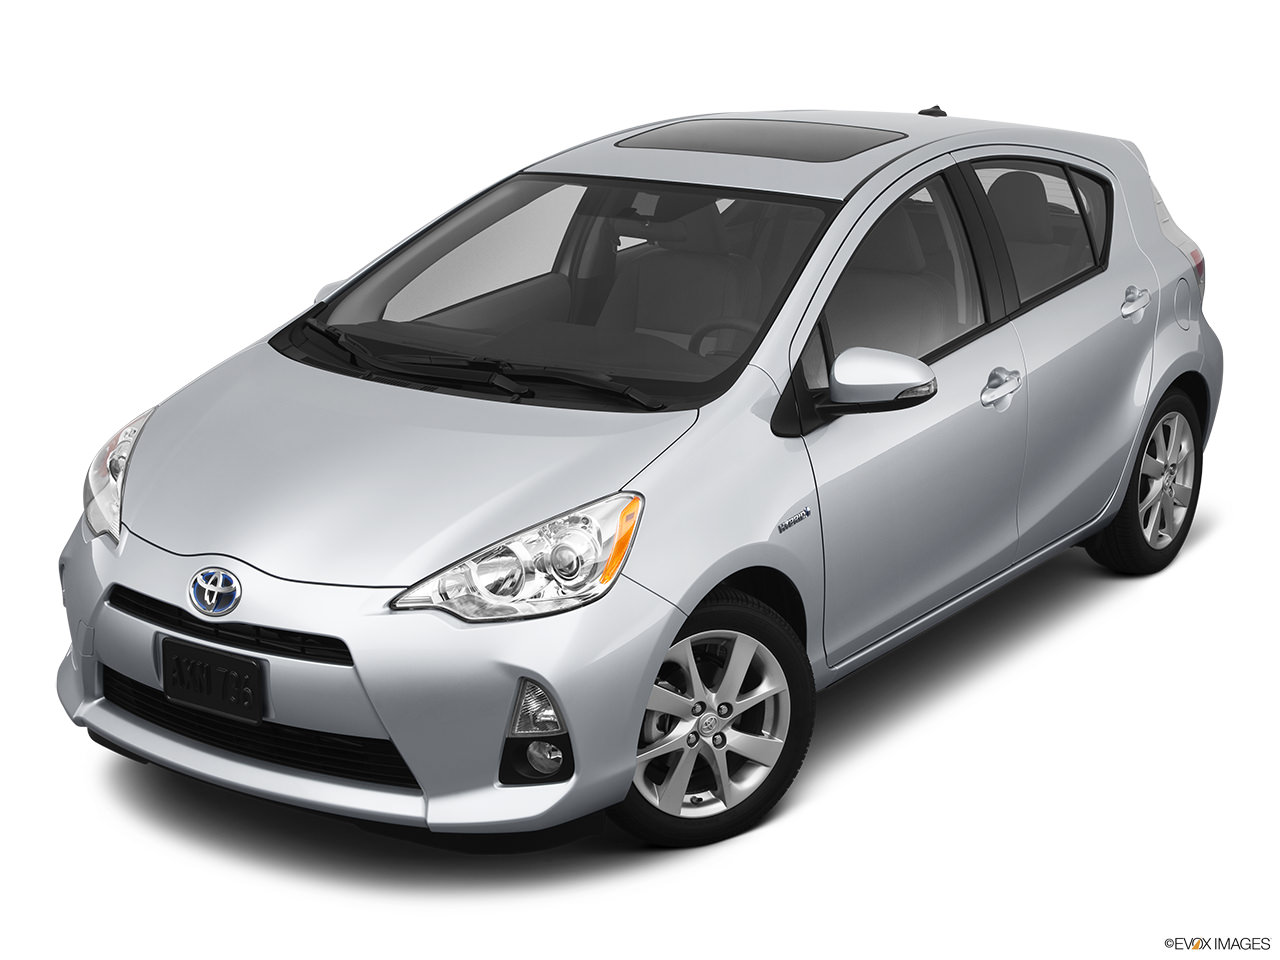 a buyer s guide to the 2012 toyota prius c yourmechanic advice rh yourmechanic com 2012 toyota prius v owners manual 2012 toyota prius owners manual